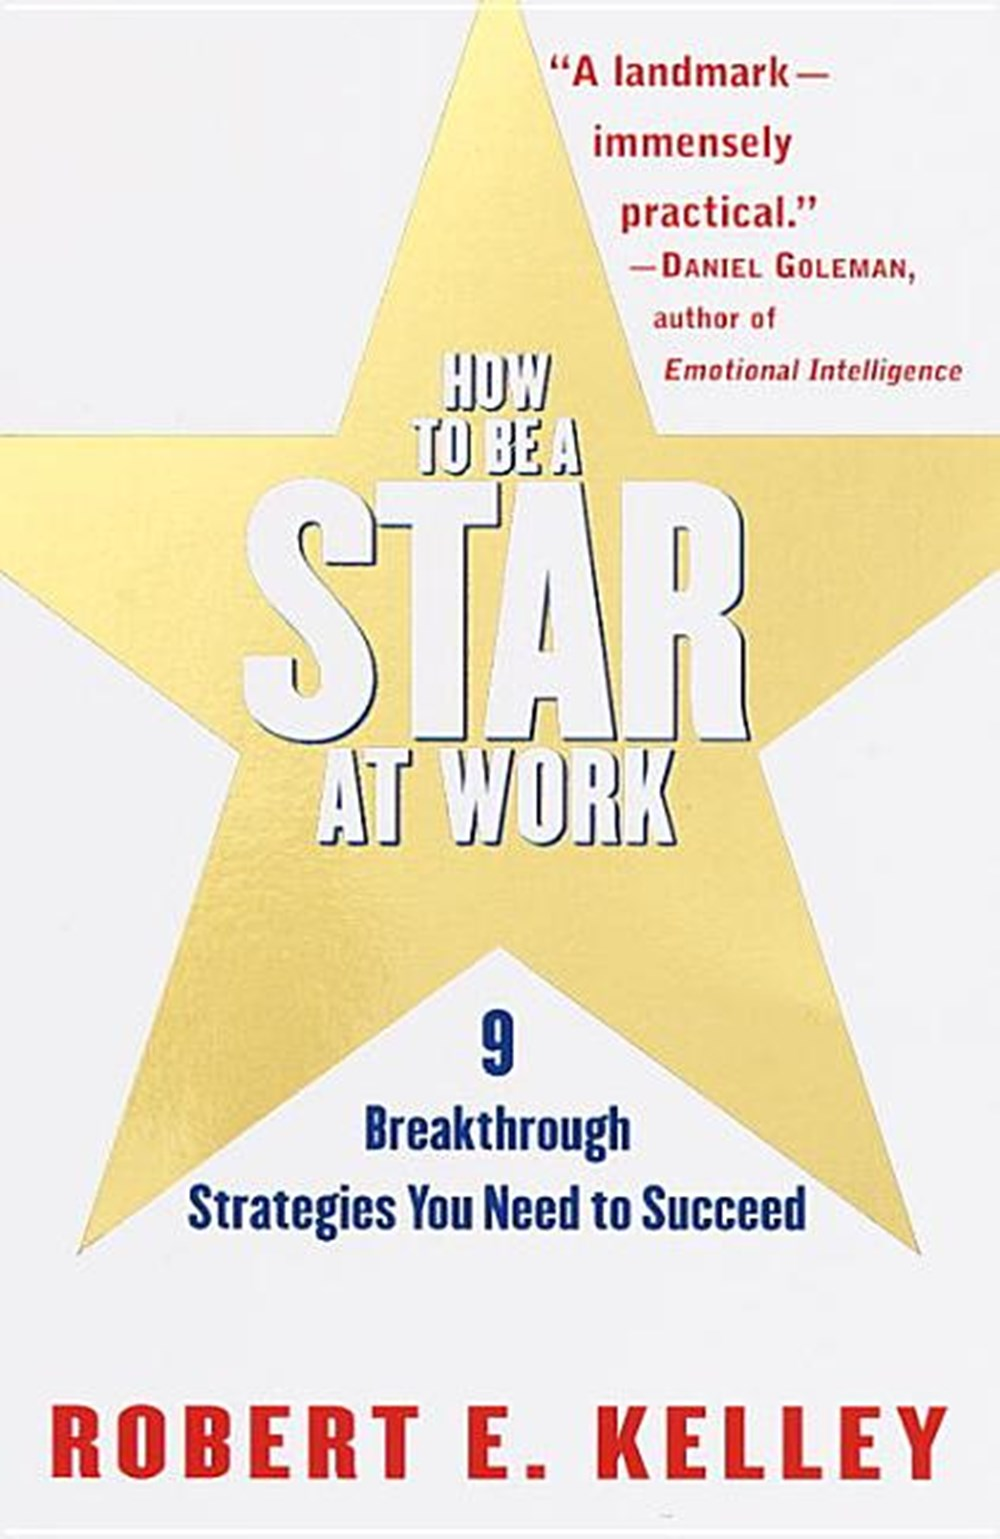 How to Be a Star at Work 9 Breakthrough Strategies You Need to Succeed